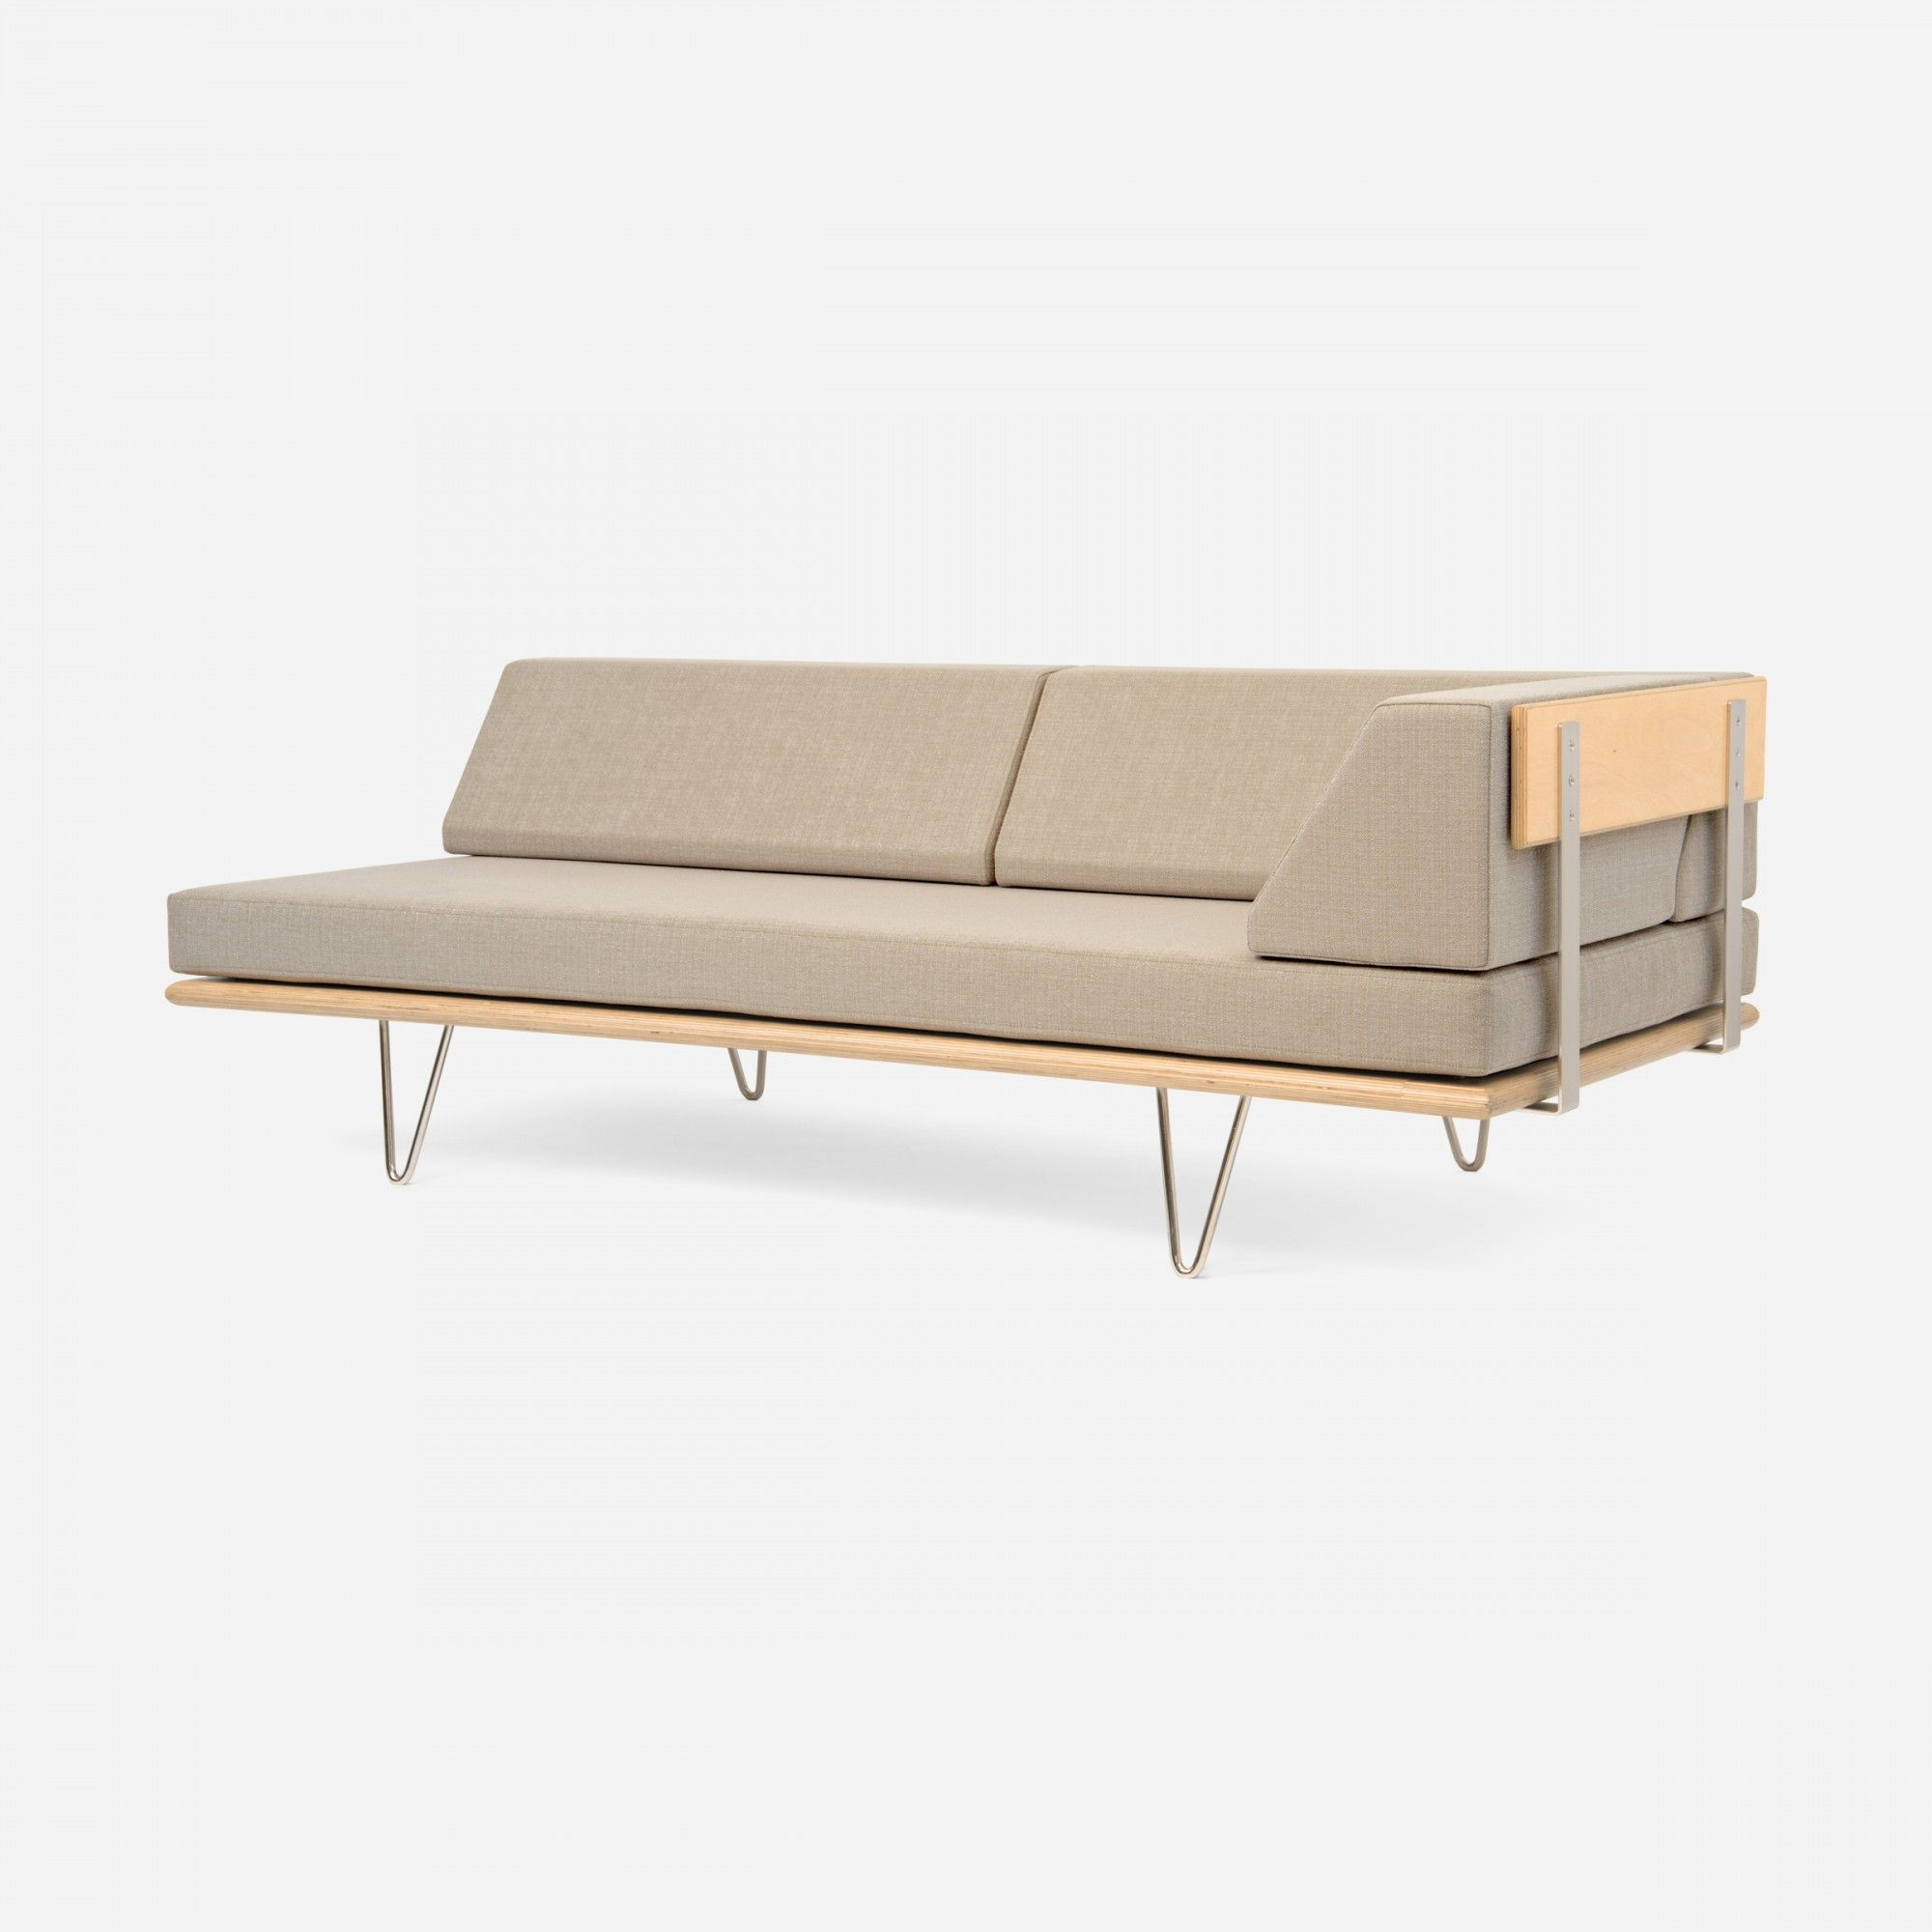 Case Study VLeg Daybed wArm Daybeds Seating Modernica